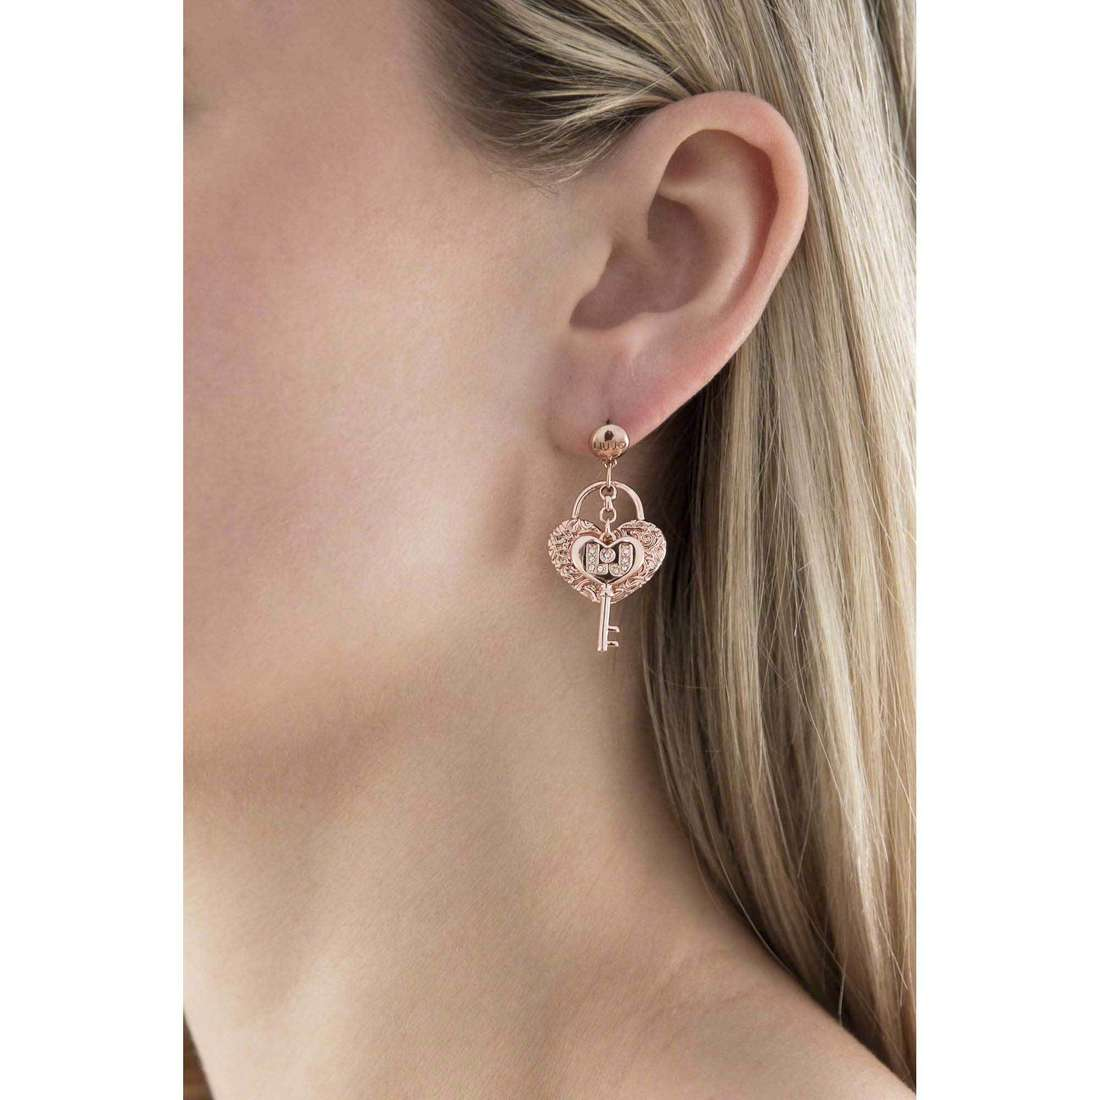 Liujo earrings Destini woman LJ848 indosso